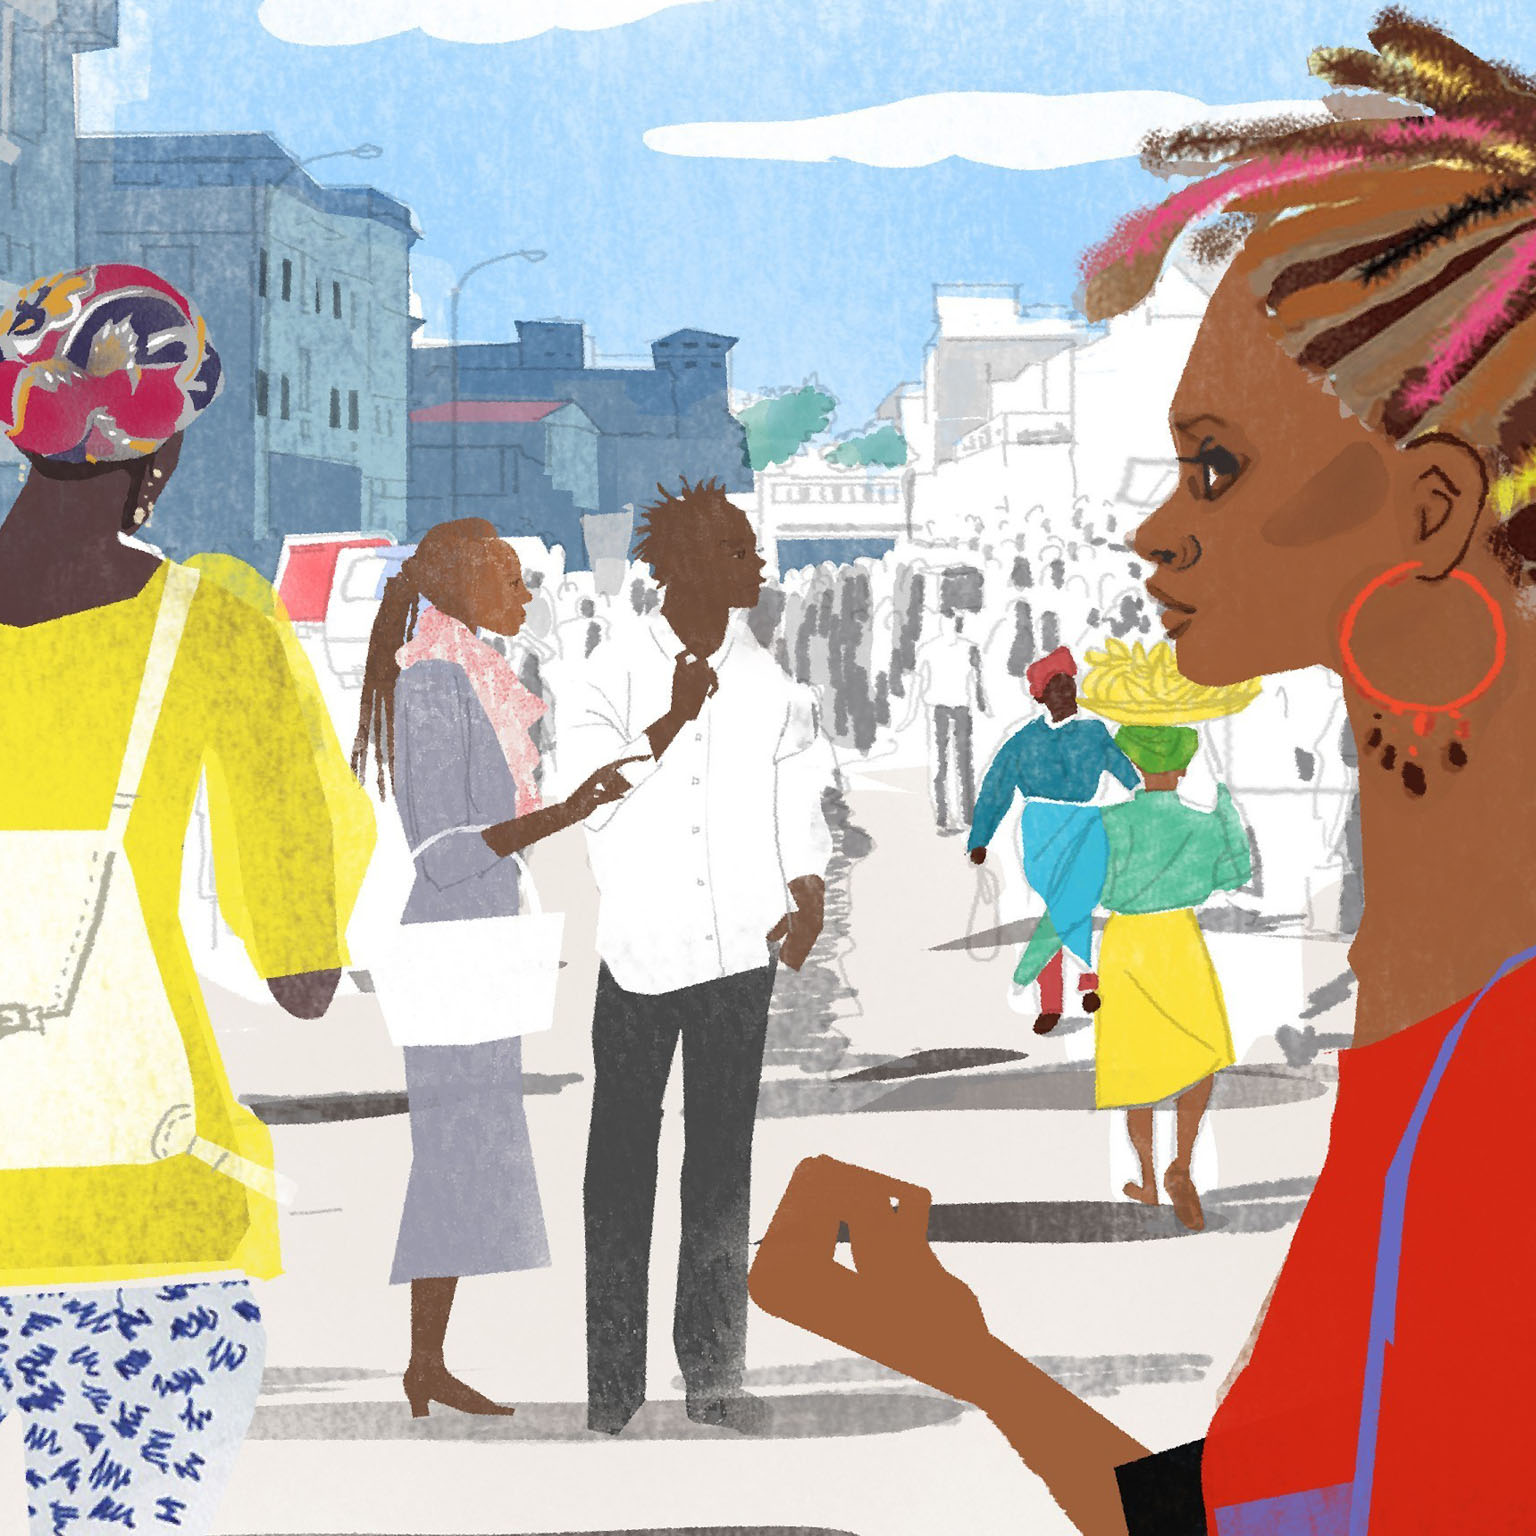 Lions (still) on the move: Growth in Africa's consumer sector | McKinsey